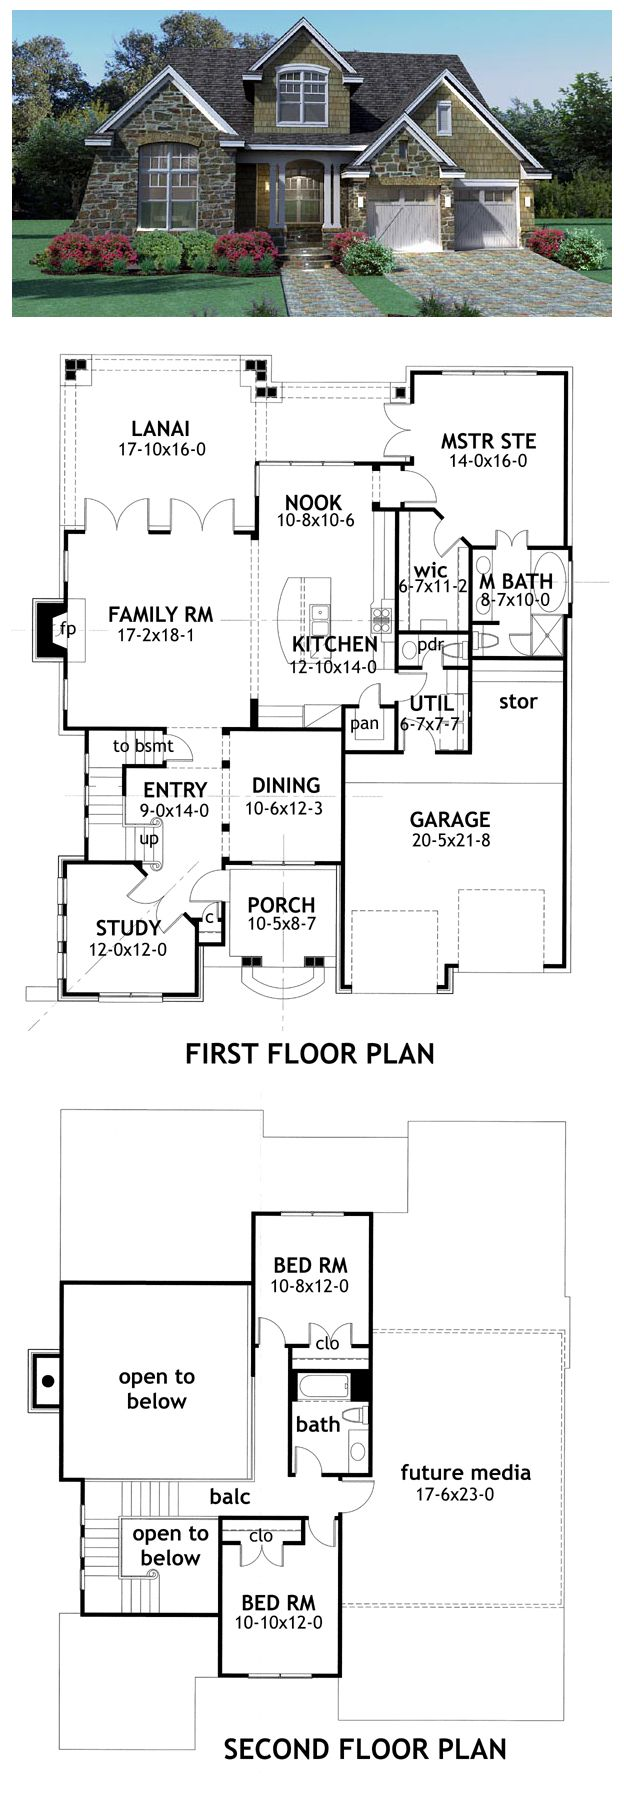 home floor plans with master suite upstairs : gigaclub.co